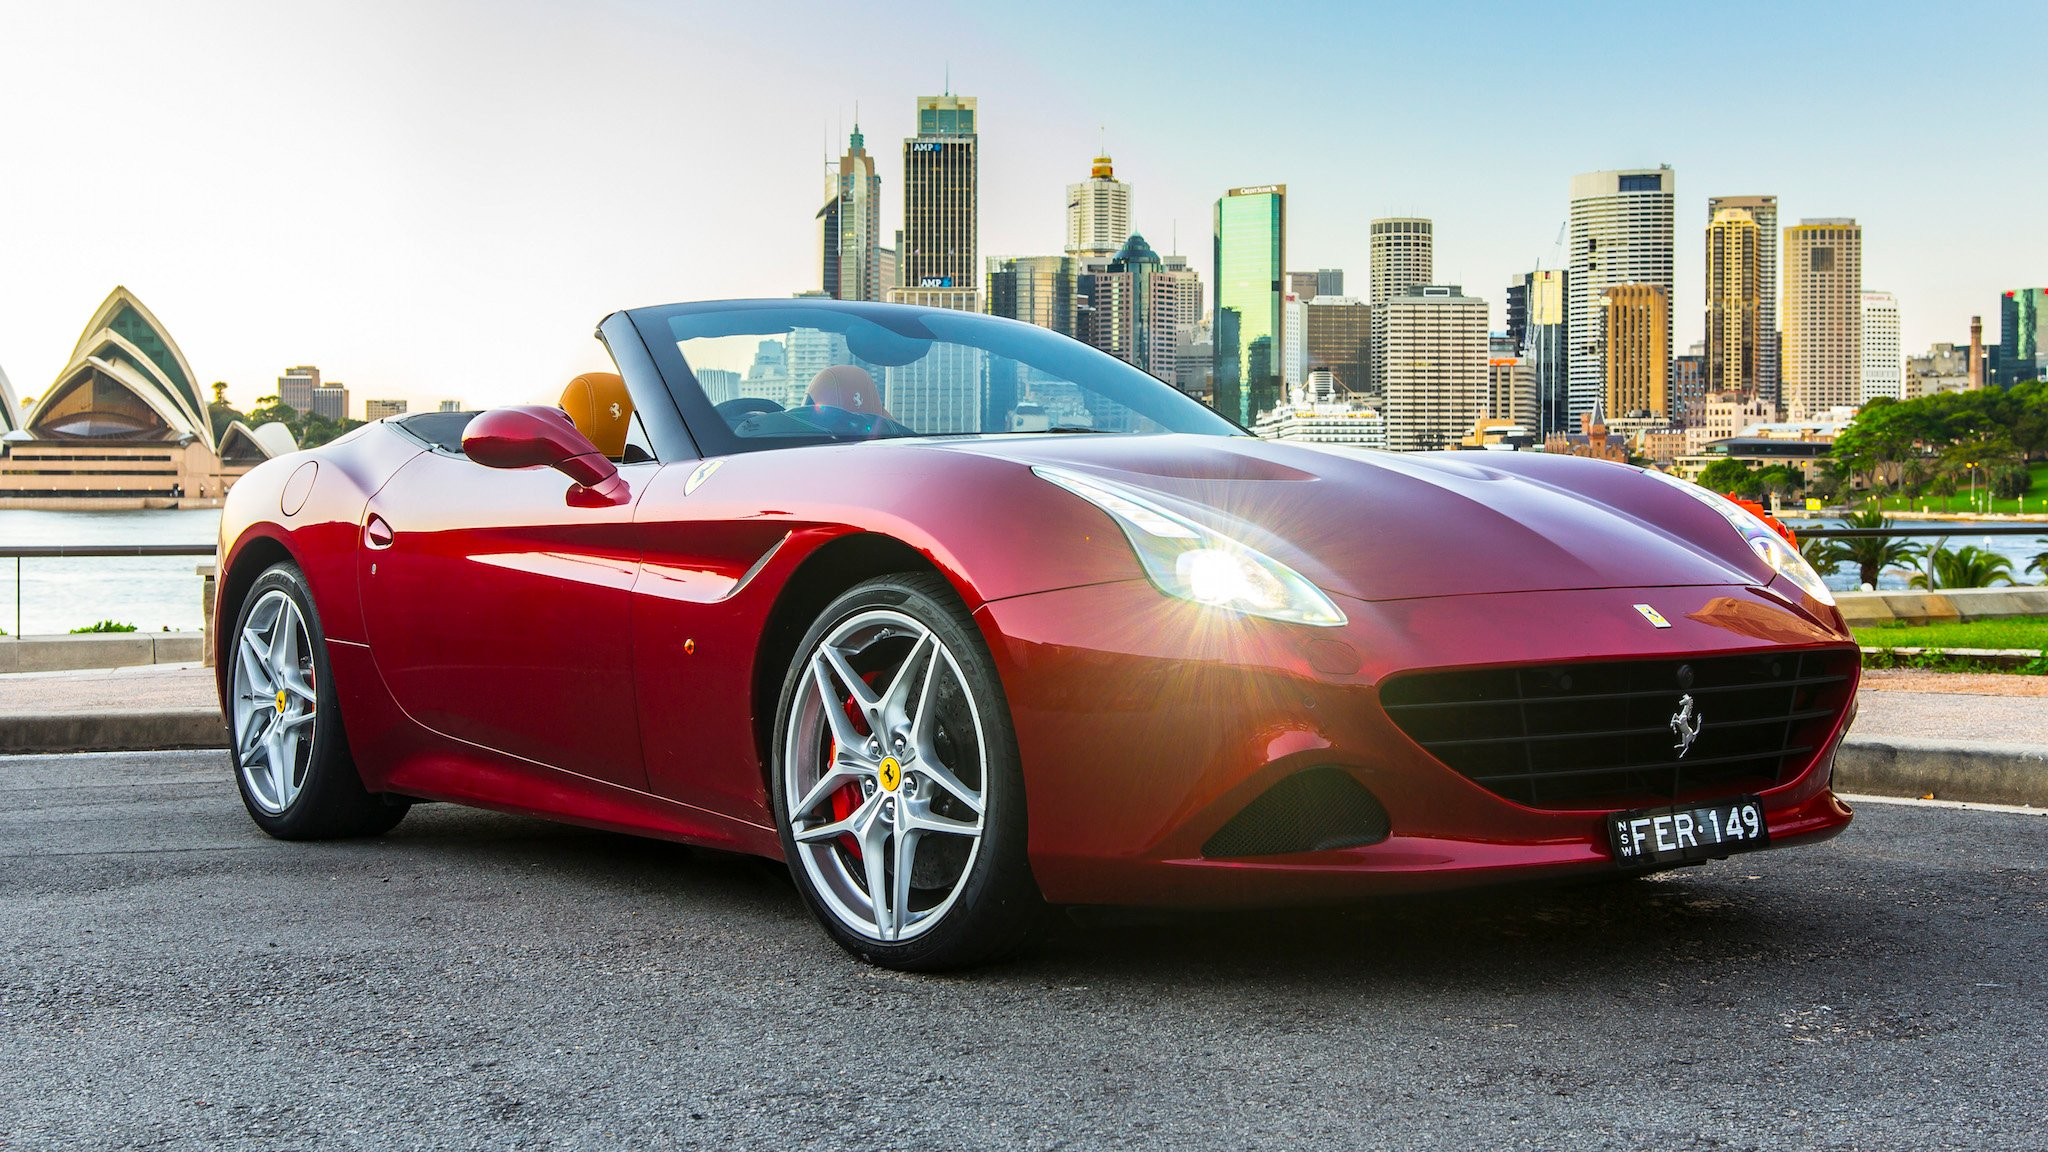 2015 ferrari california t review caradvice. Black Bedroom Furniture Sets. Home Design Ideas